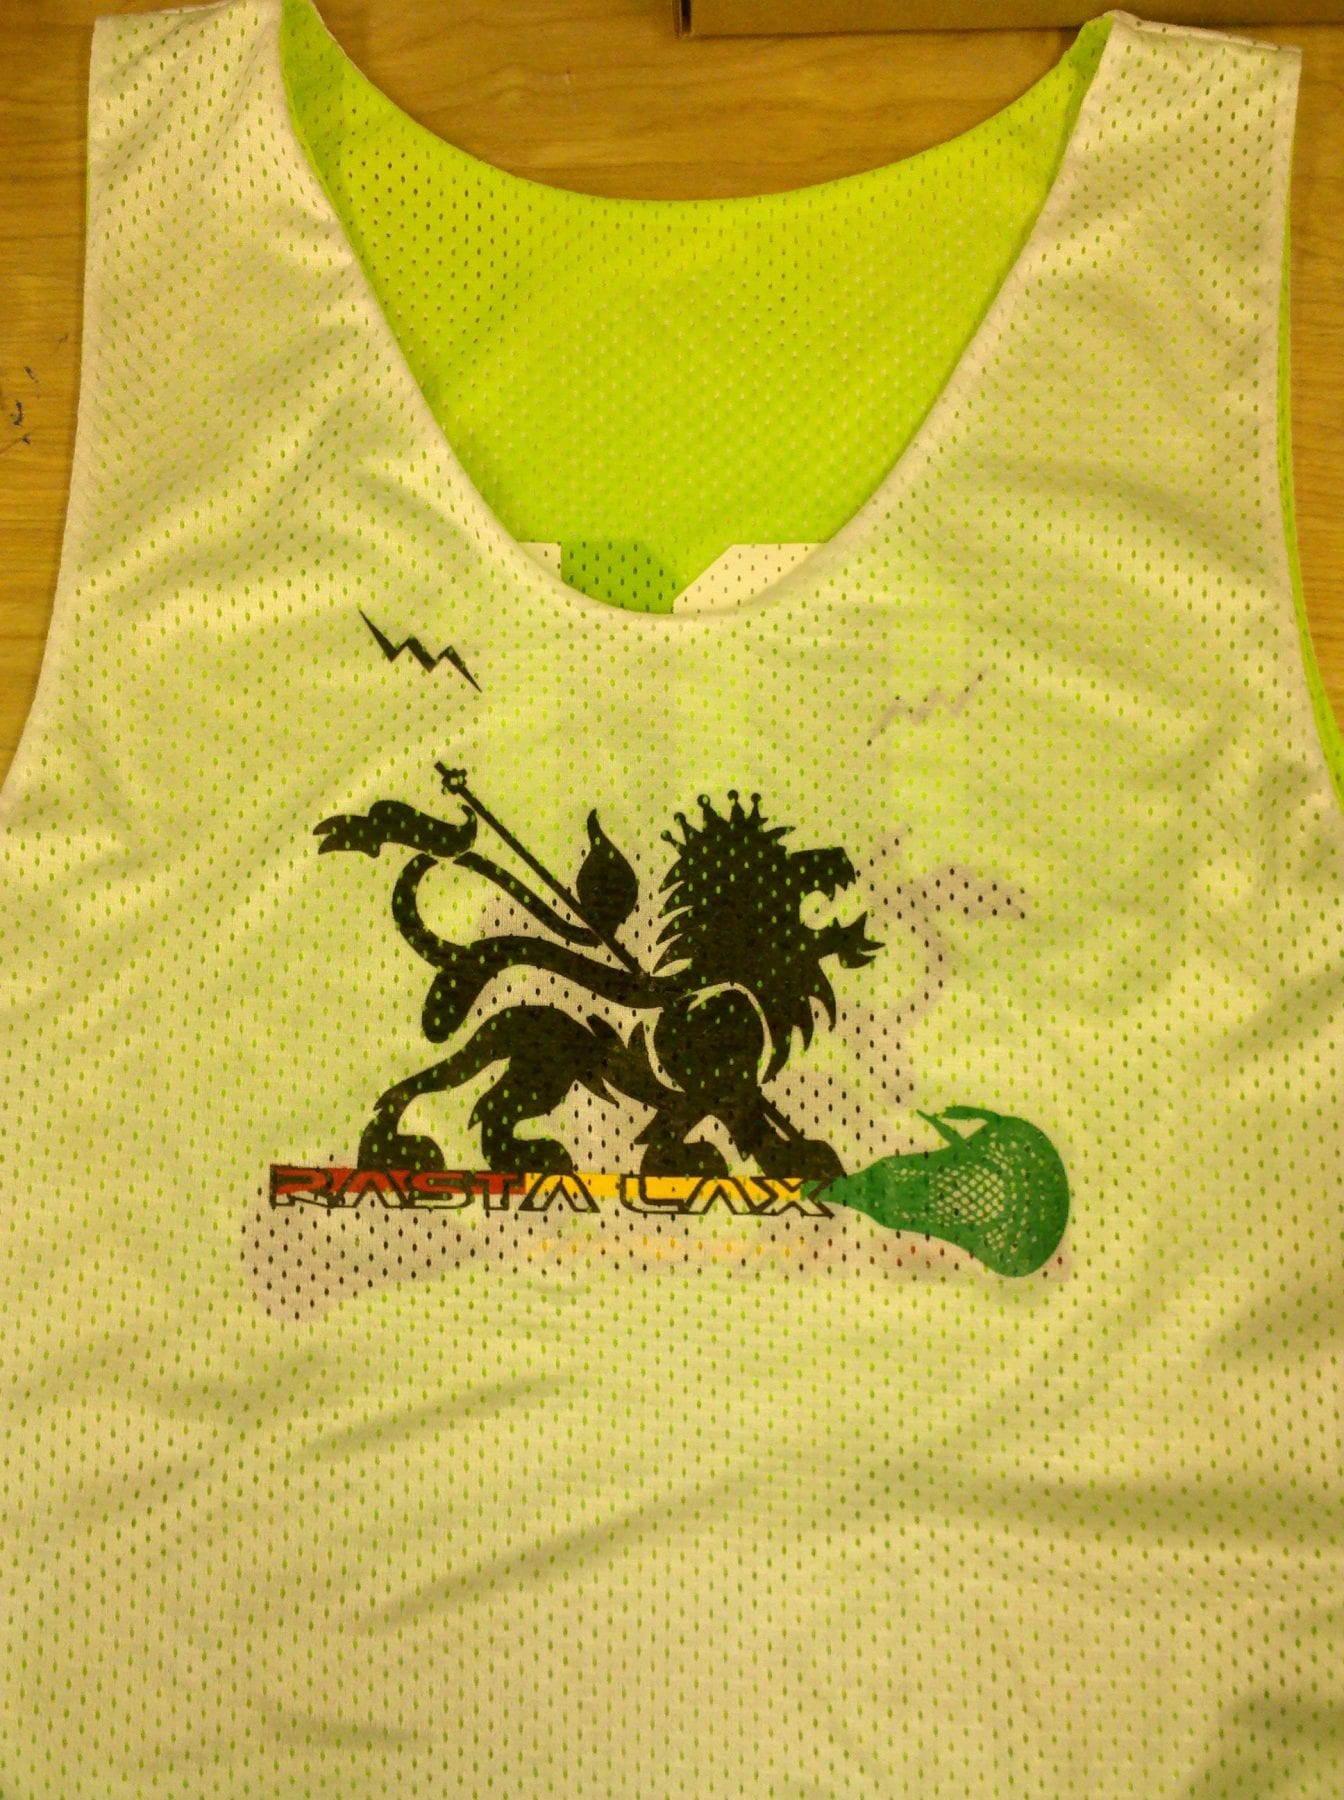 rasta lax pinnies